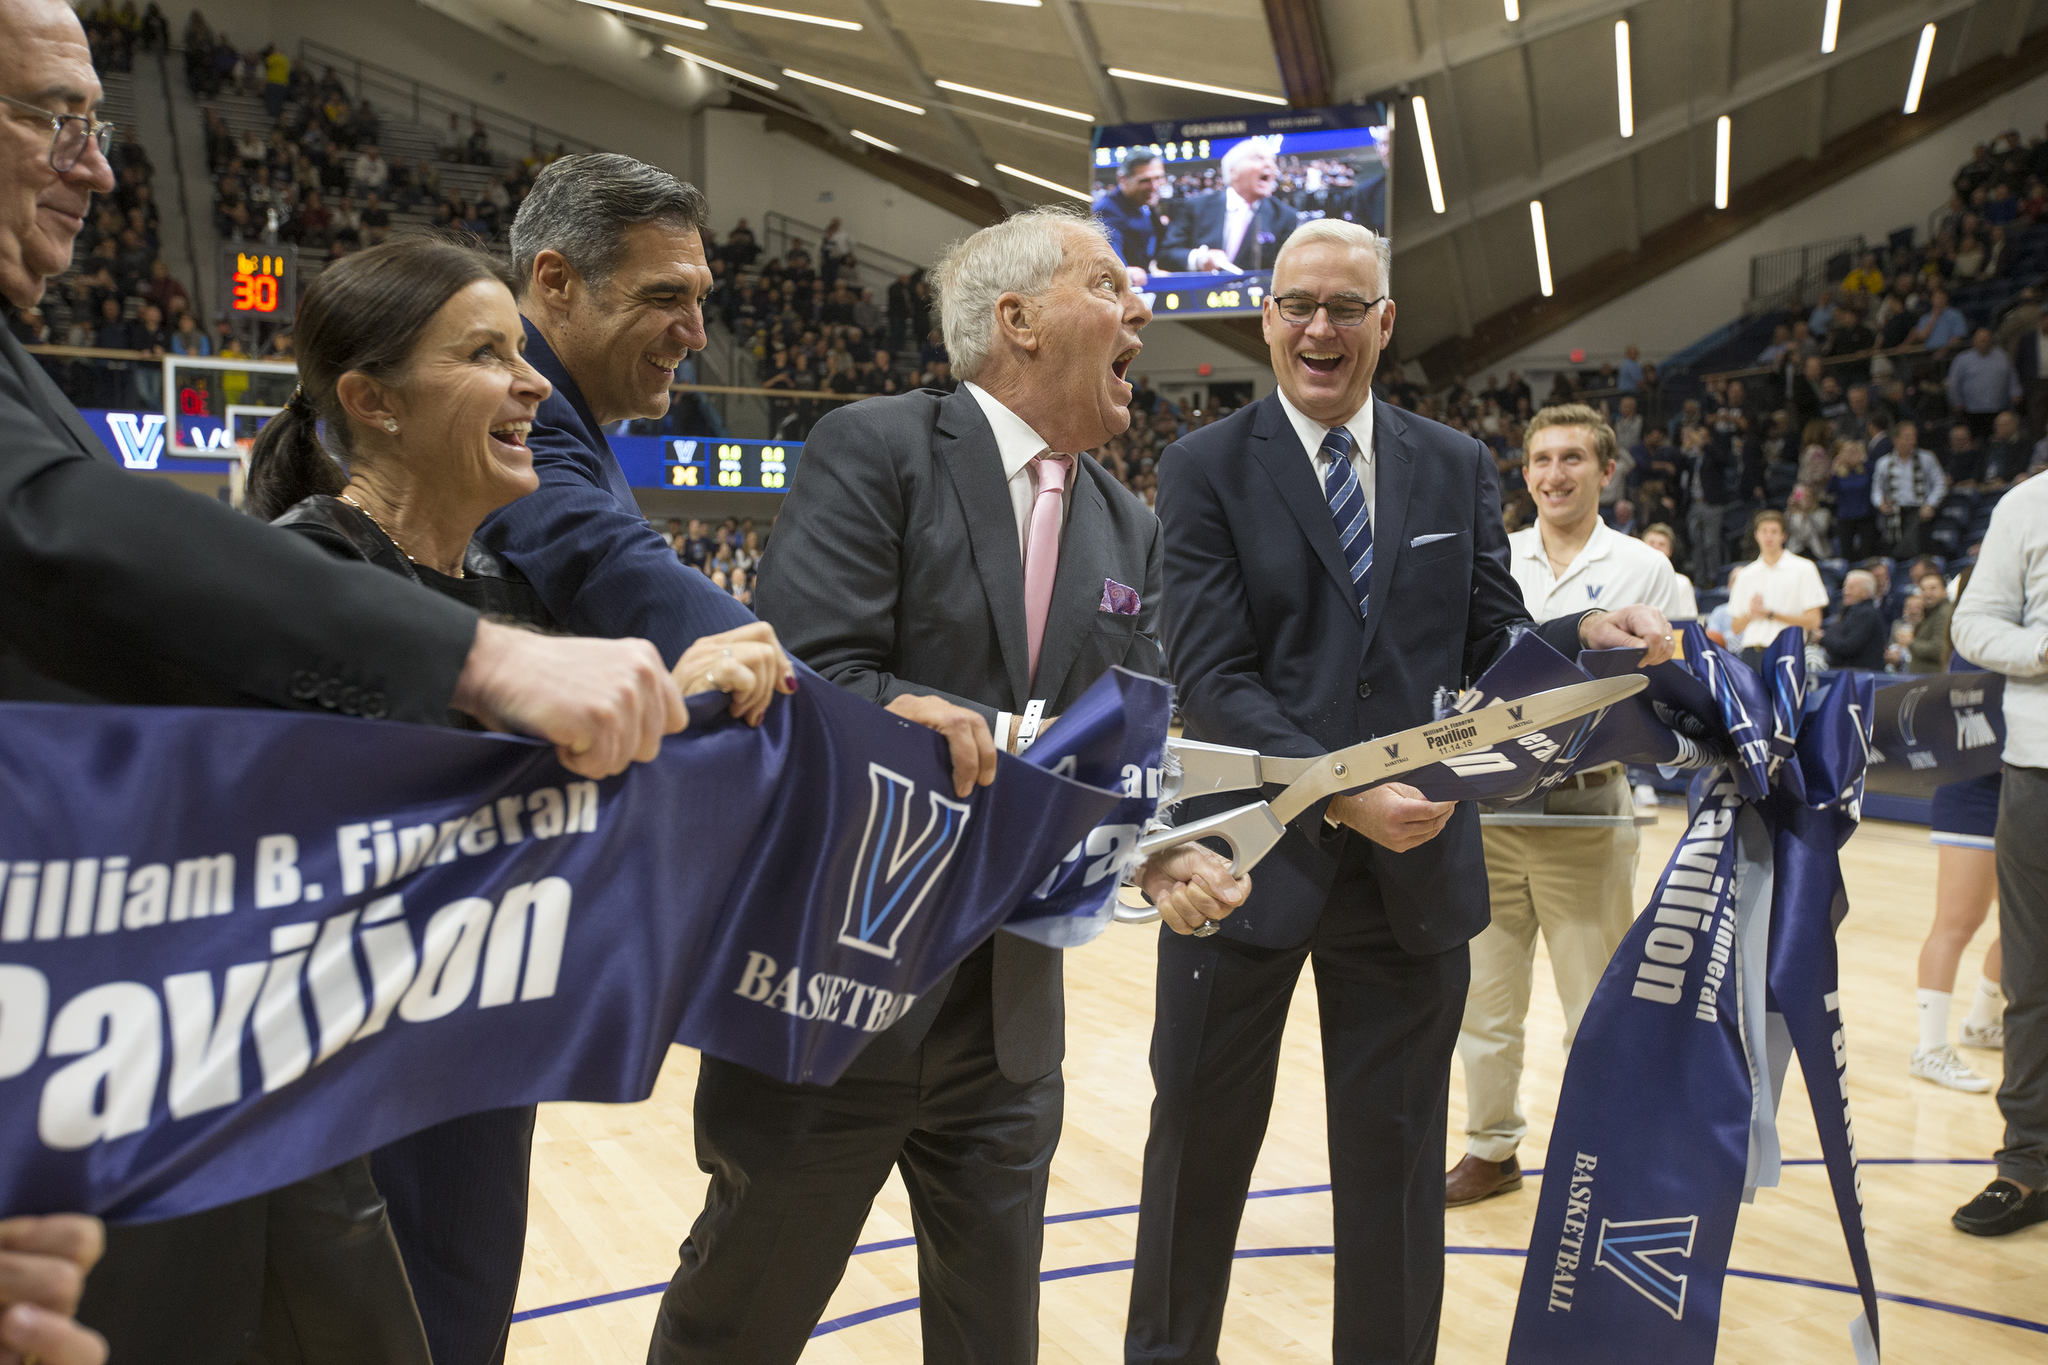 William Finneran, center, cuts the ribbon to officially open the Finneran Pavilion before the game against Villanova and Michigan on Nov. 14, 2018.